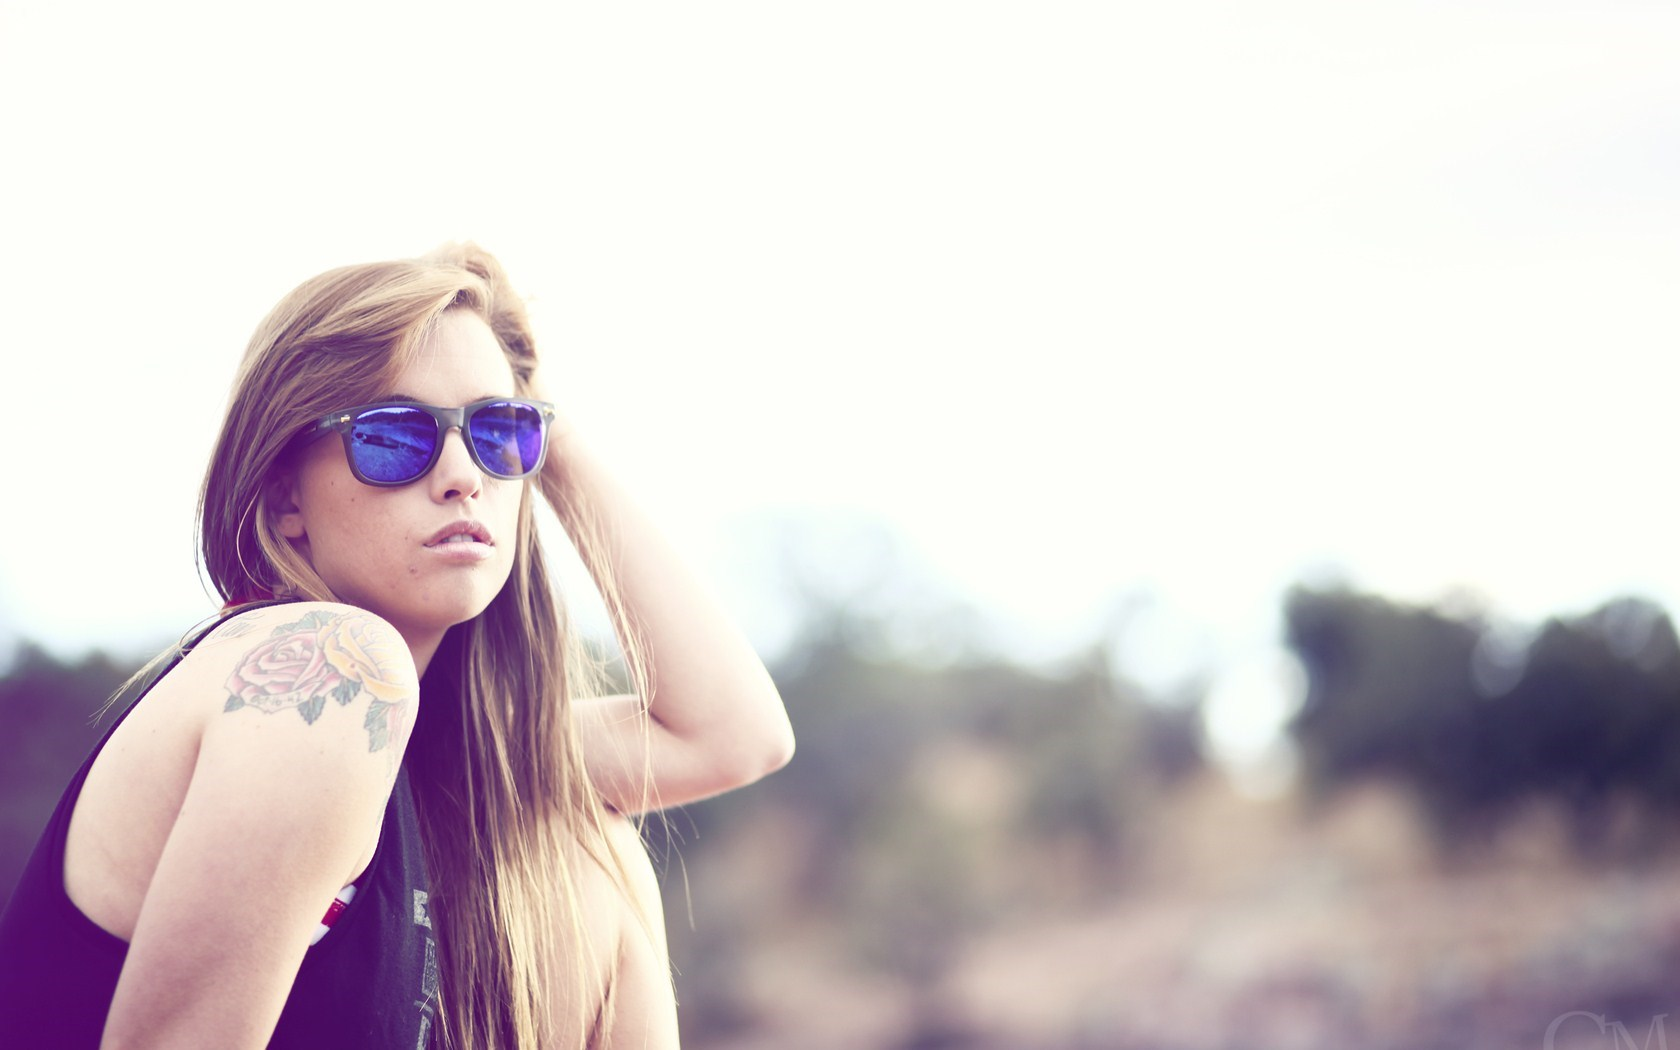 Beautiful Girl Sunglasses TeraVena Photography